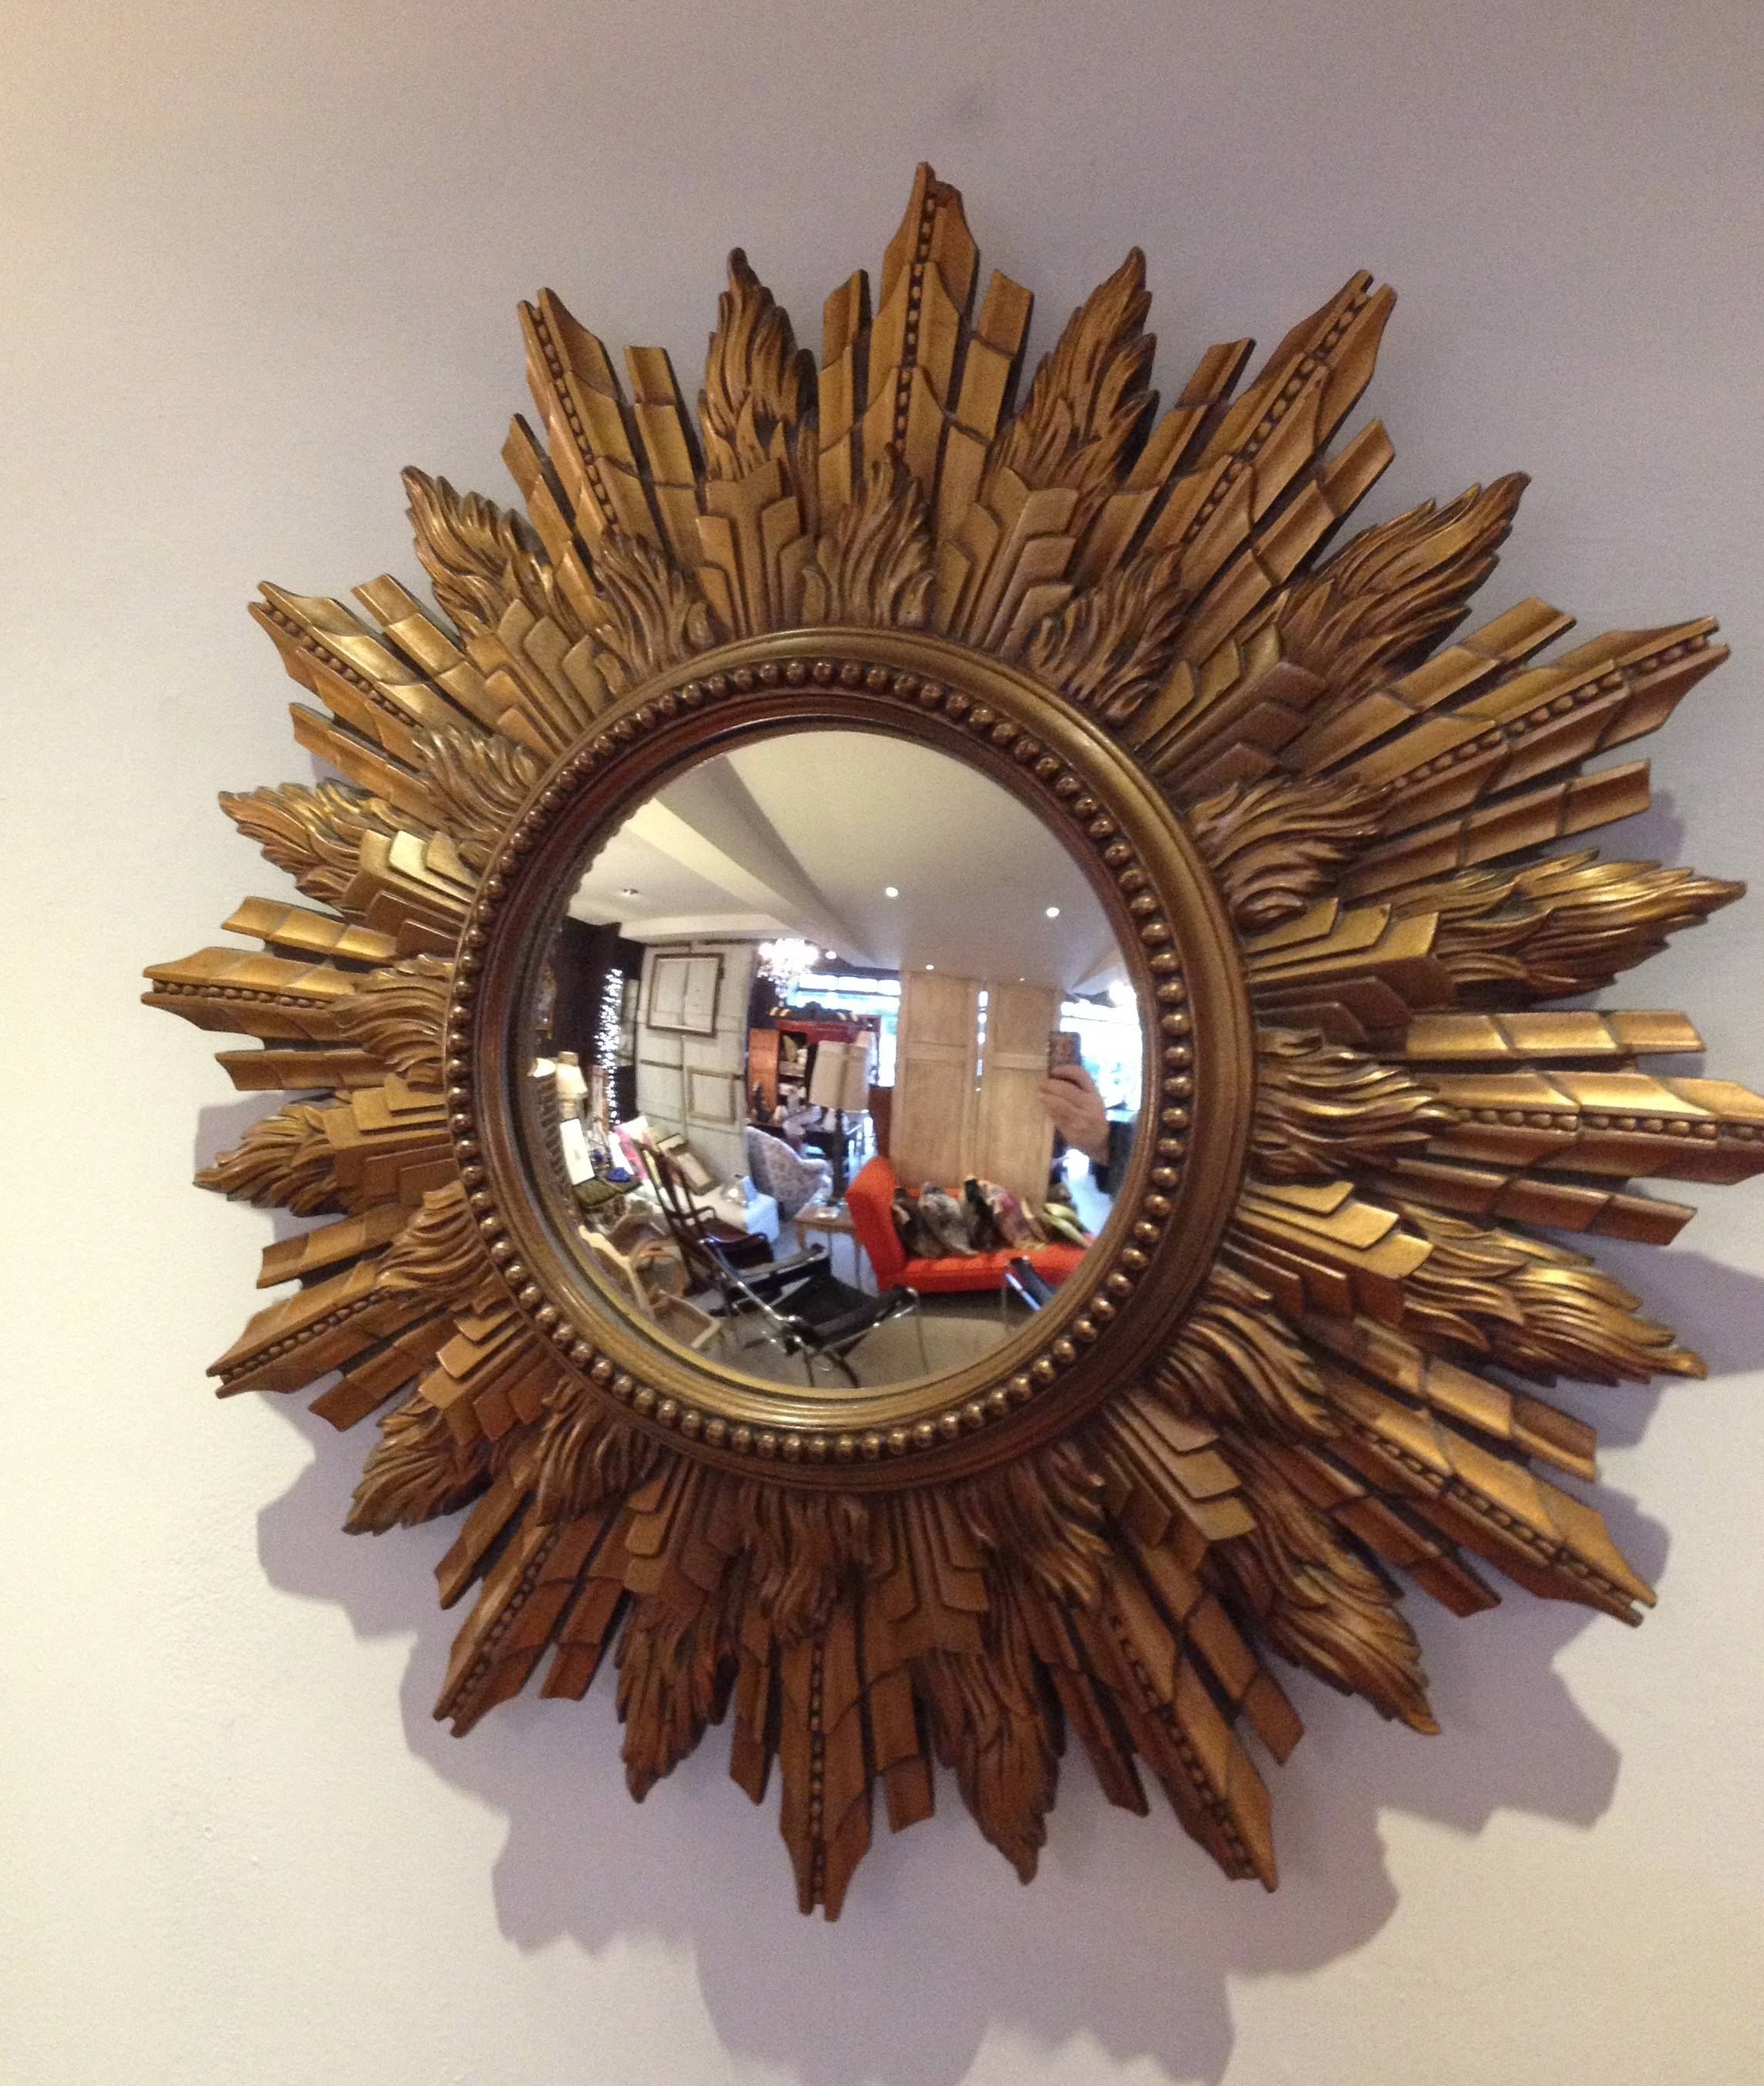 Decorating: Large Gold Sunburst Mirror For Wall Accessories Ideas throughout Large Sunburst Mirrors (Image 4 of 25)